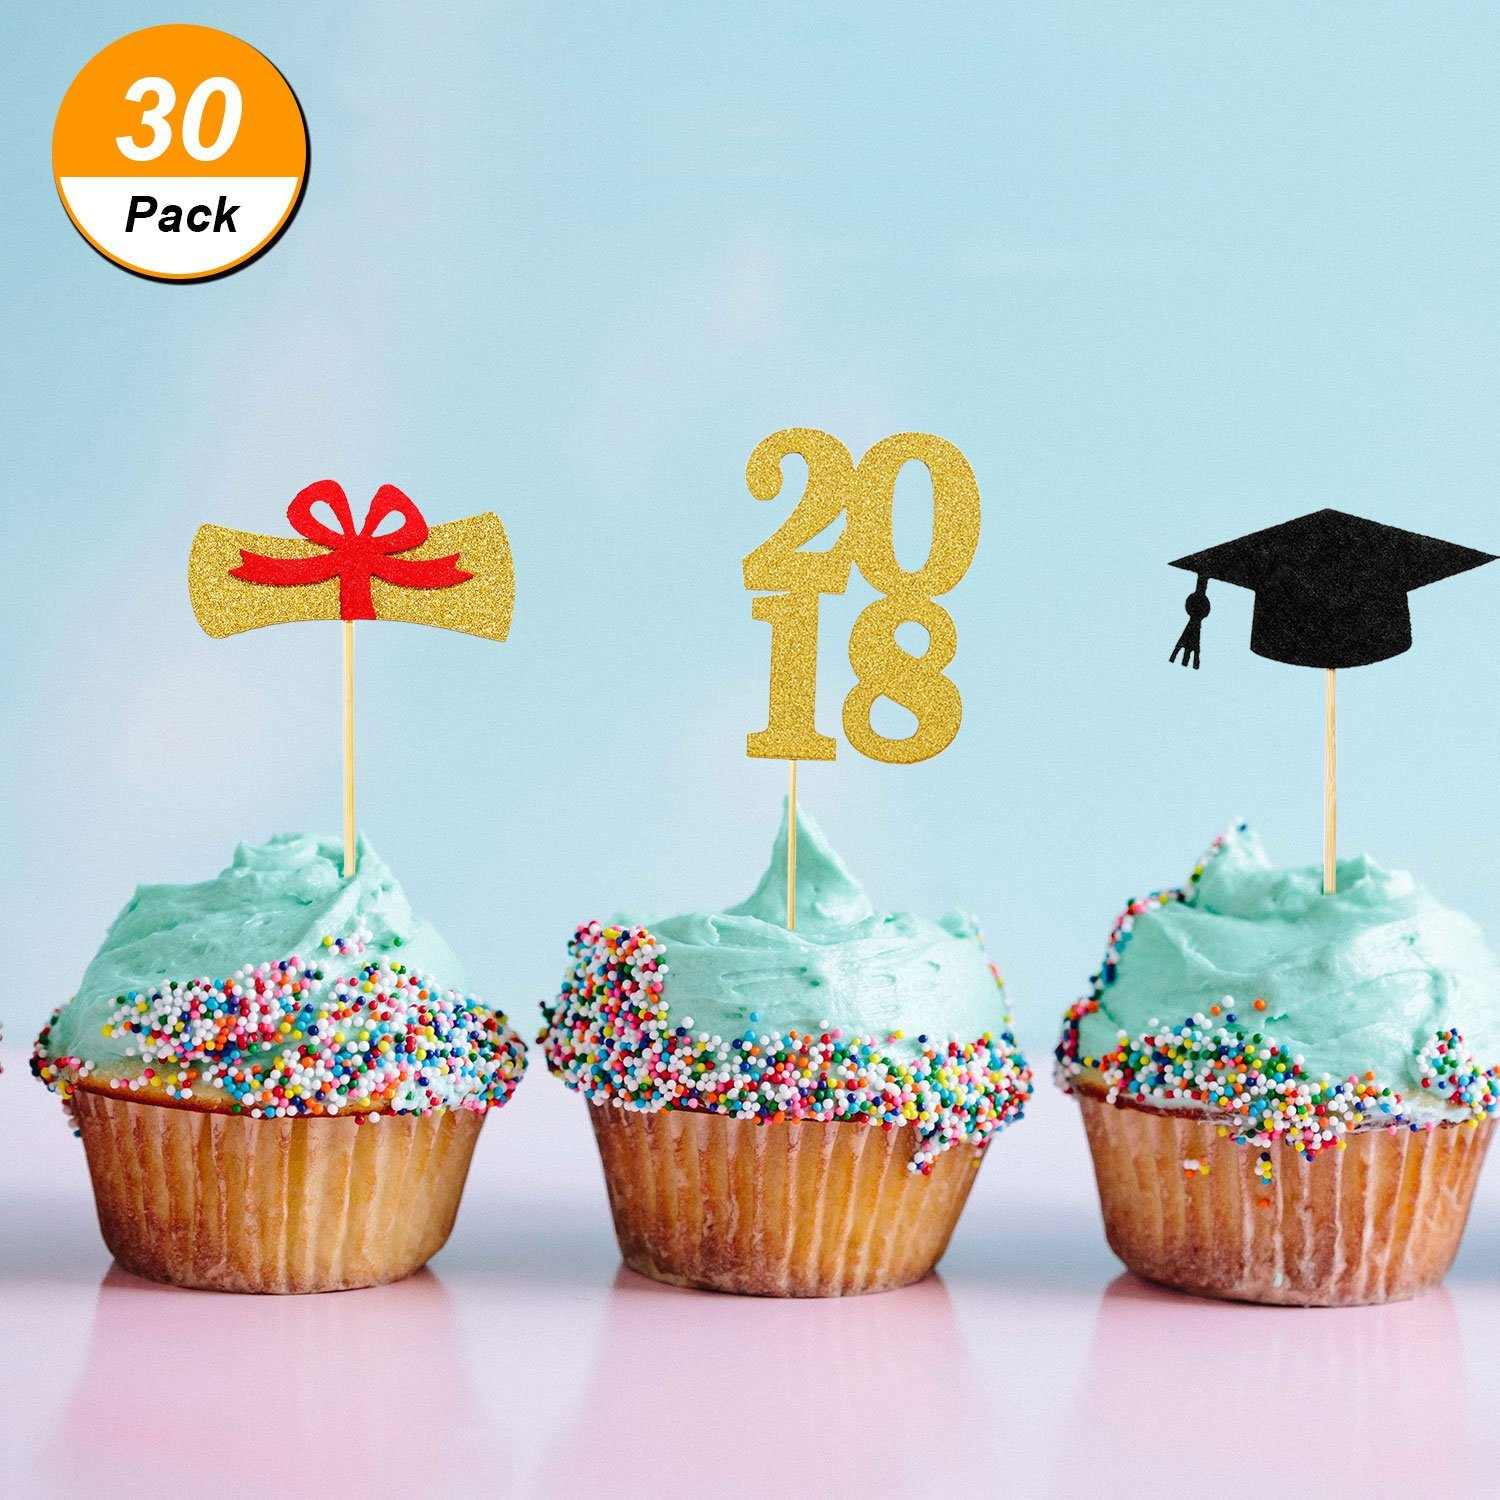 Buy Toodoo 30 Pieces Graduation Cupcake Toppers 2018